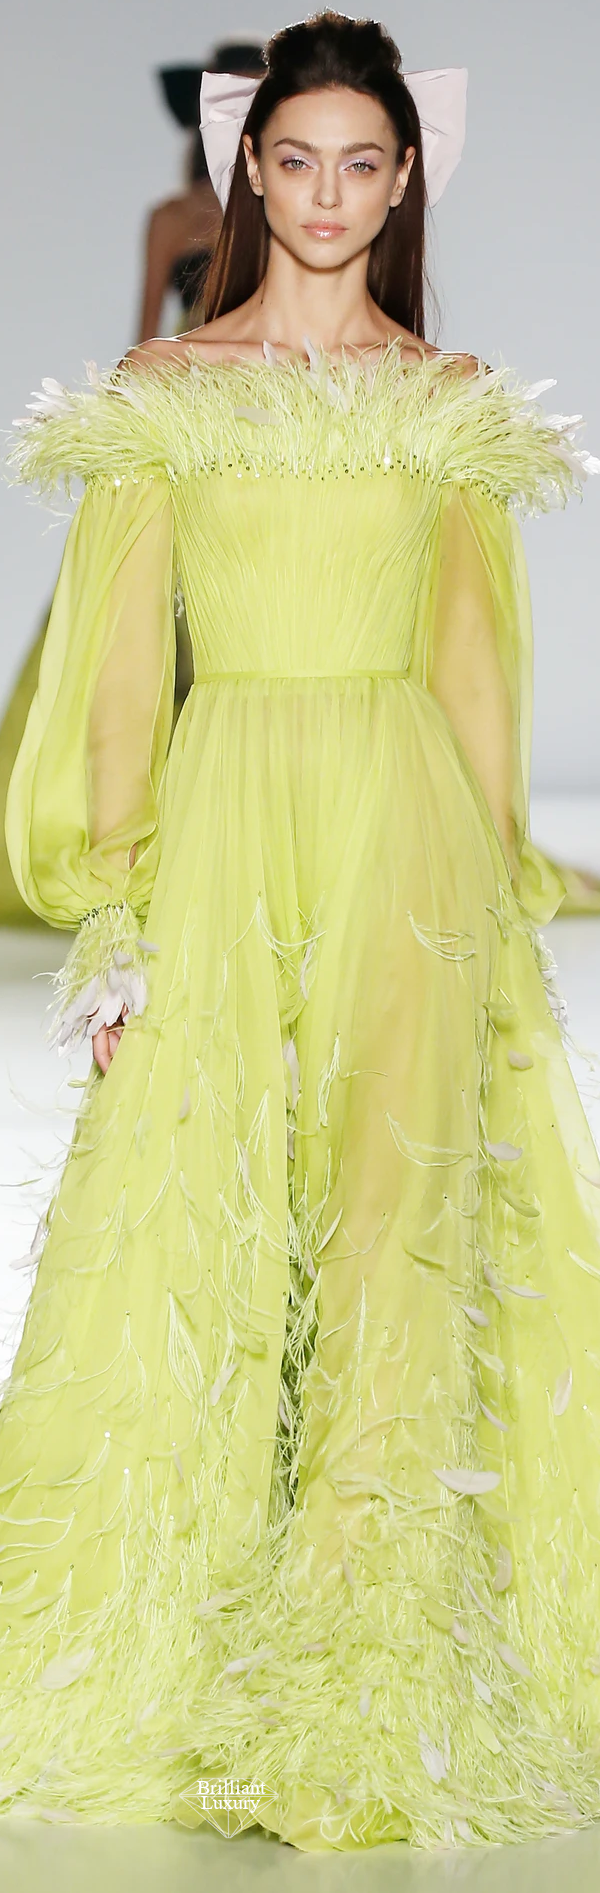 Ralph & Russo chartreuse silk chiffon bell sleeve gown featuring hand pleated details enriched with crystals sequins coque and ostrich feathers in chartreuse and pale pink #brilliantluxury